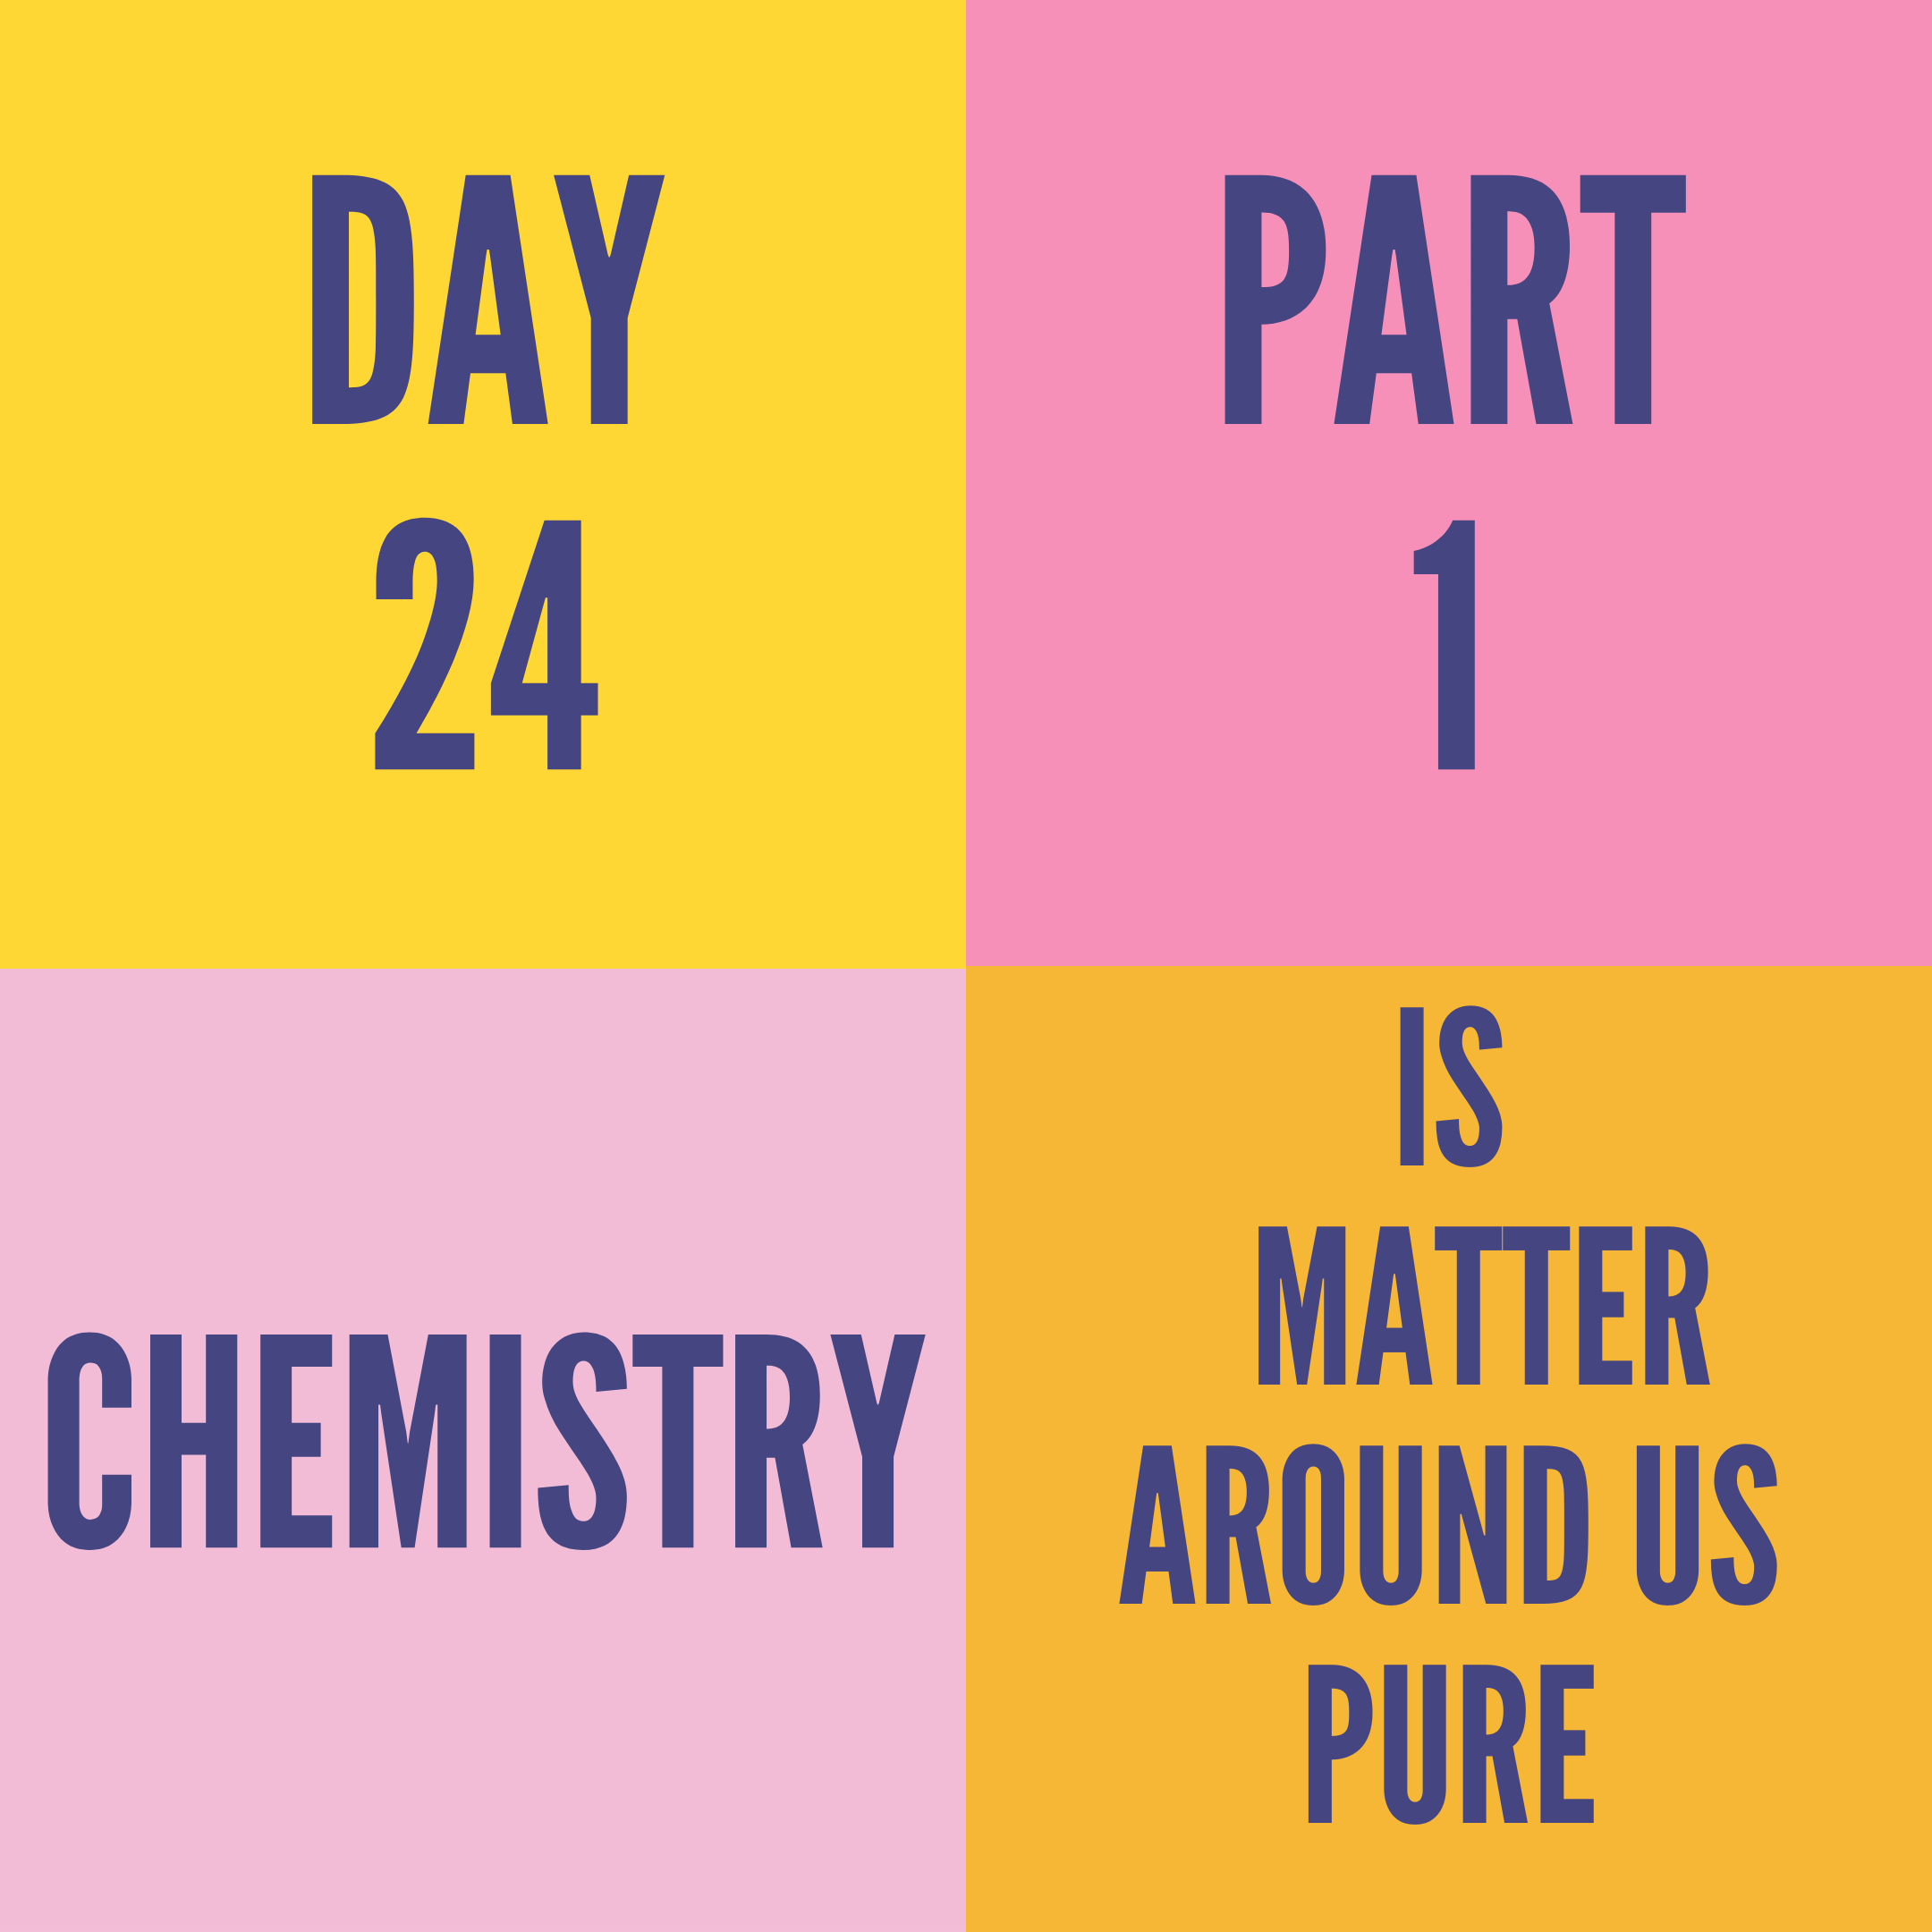 DAY-24 PART-1 IS MATTER AROUND US PURE